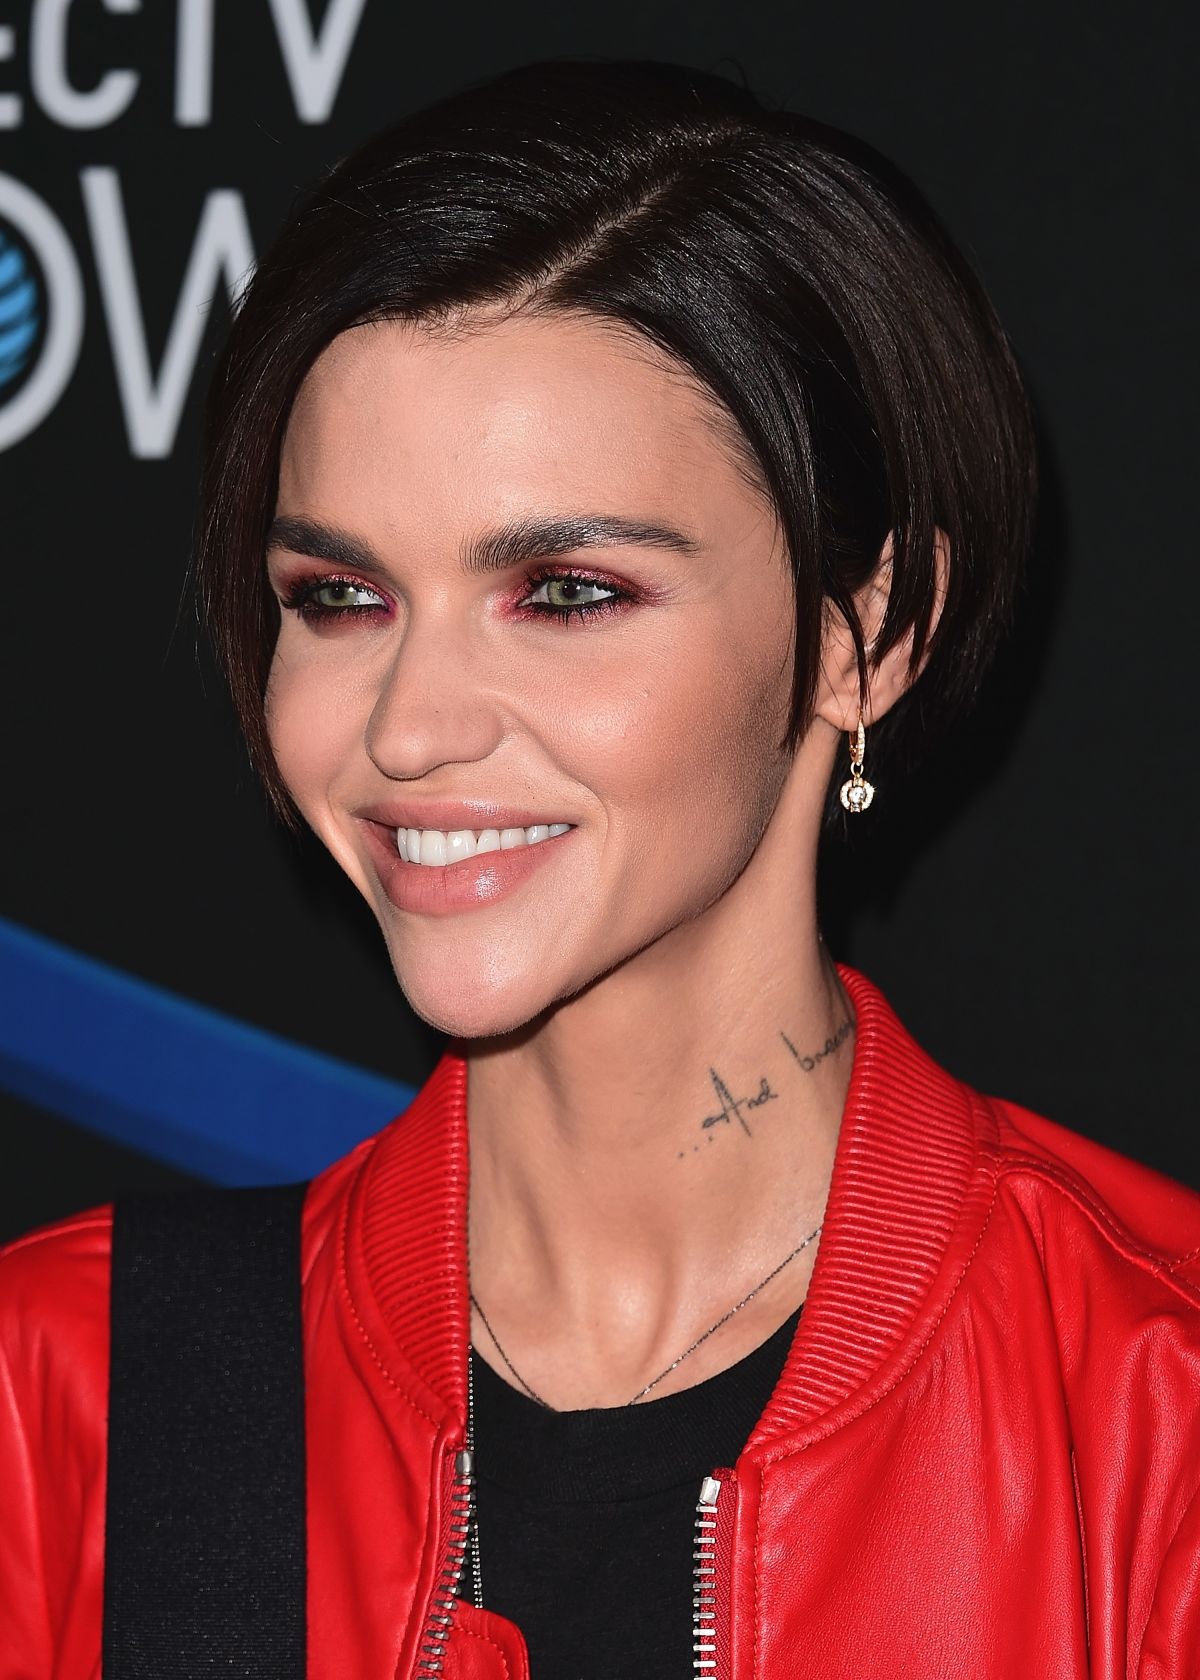 Ruby rose goes, sarah byrne naked pics